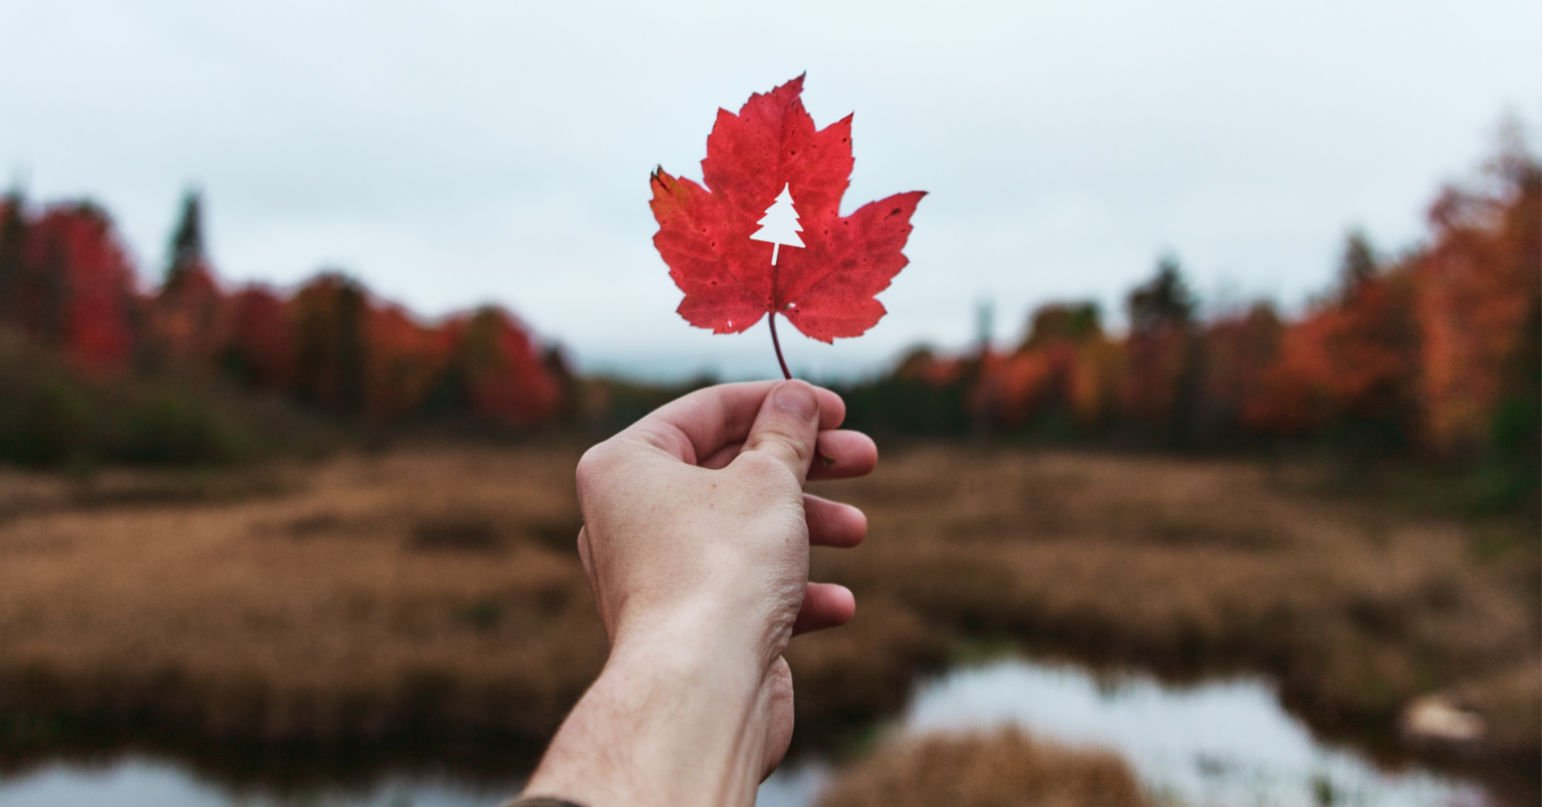 hand holding red leaf with tree cut out of it